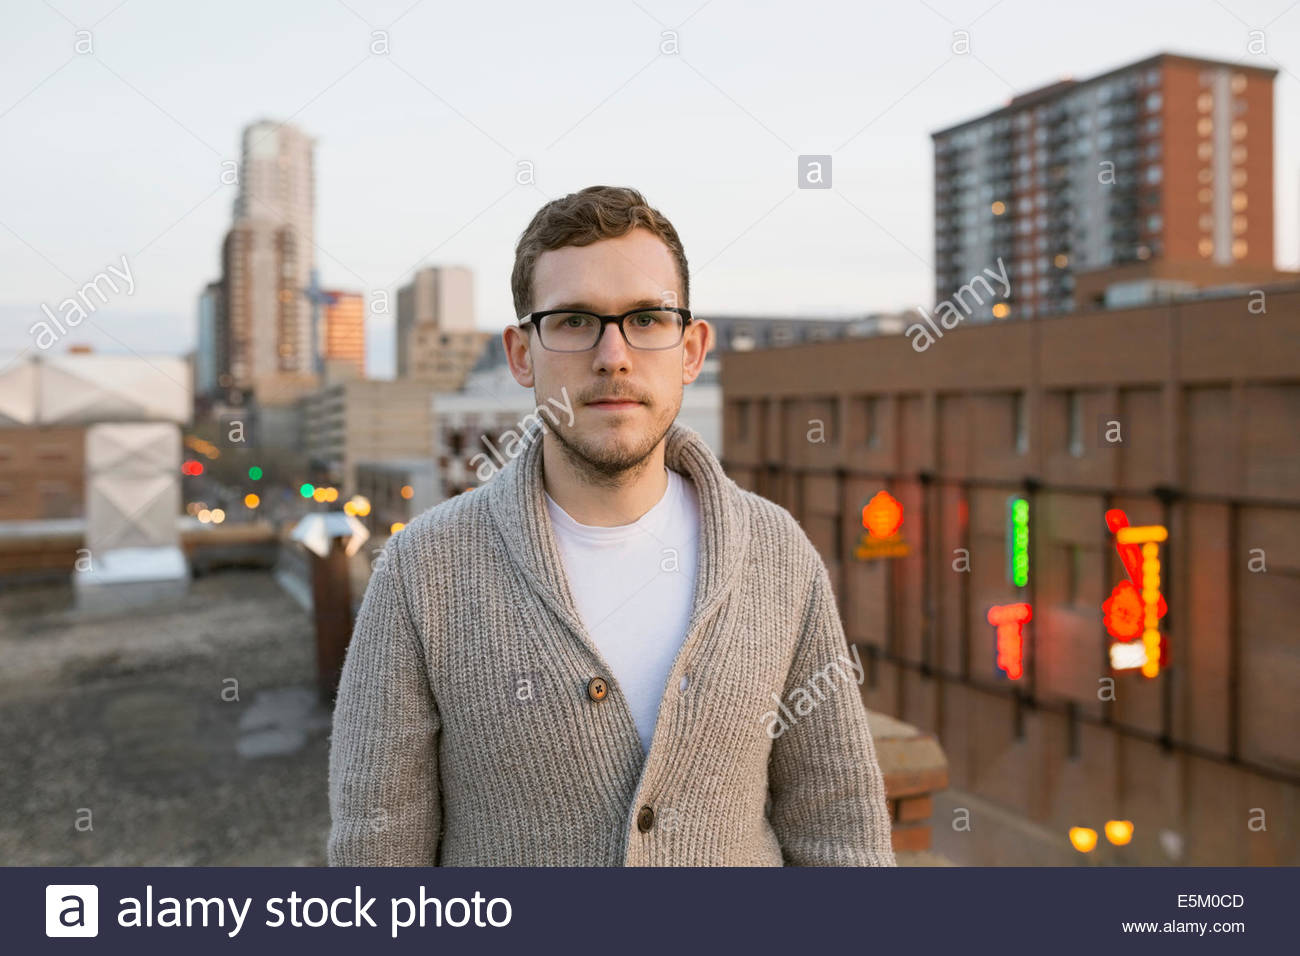 Portrait of serious man on urban rooftop - Stock Image